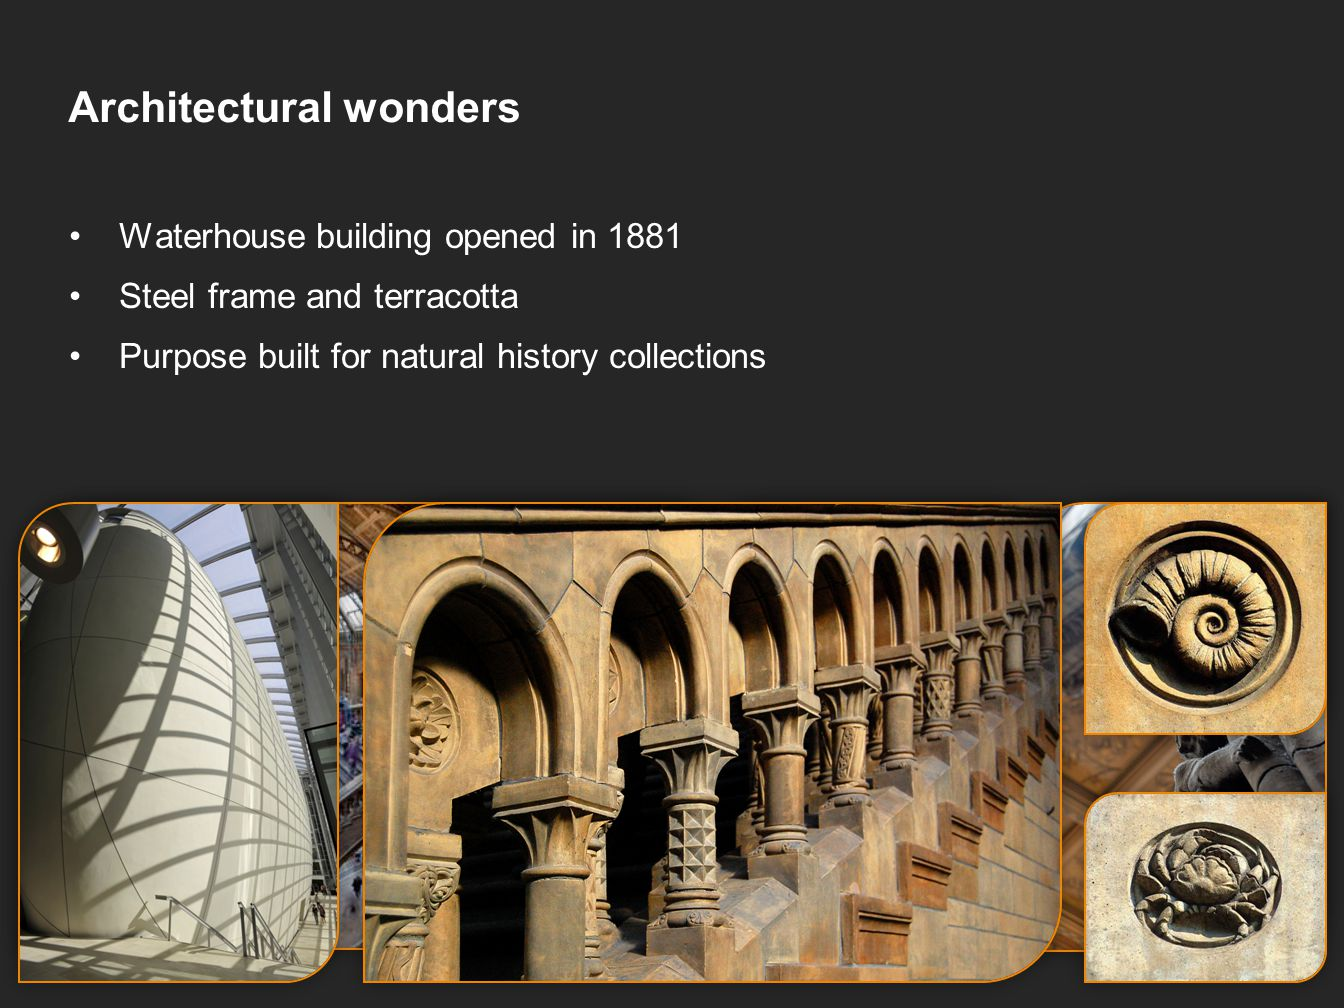 Architectural wonders